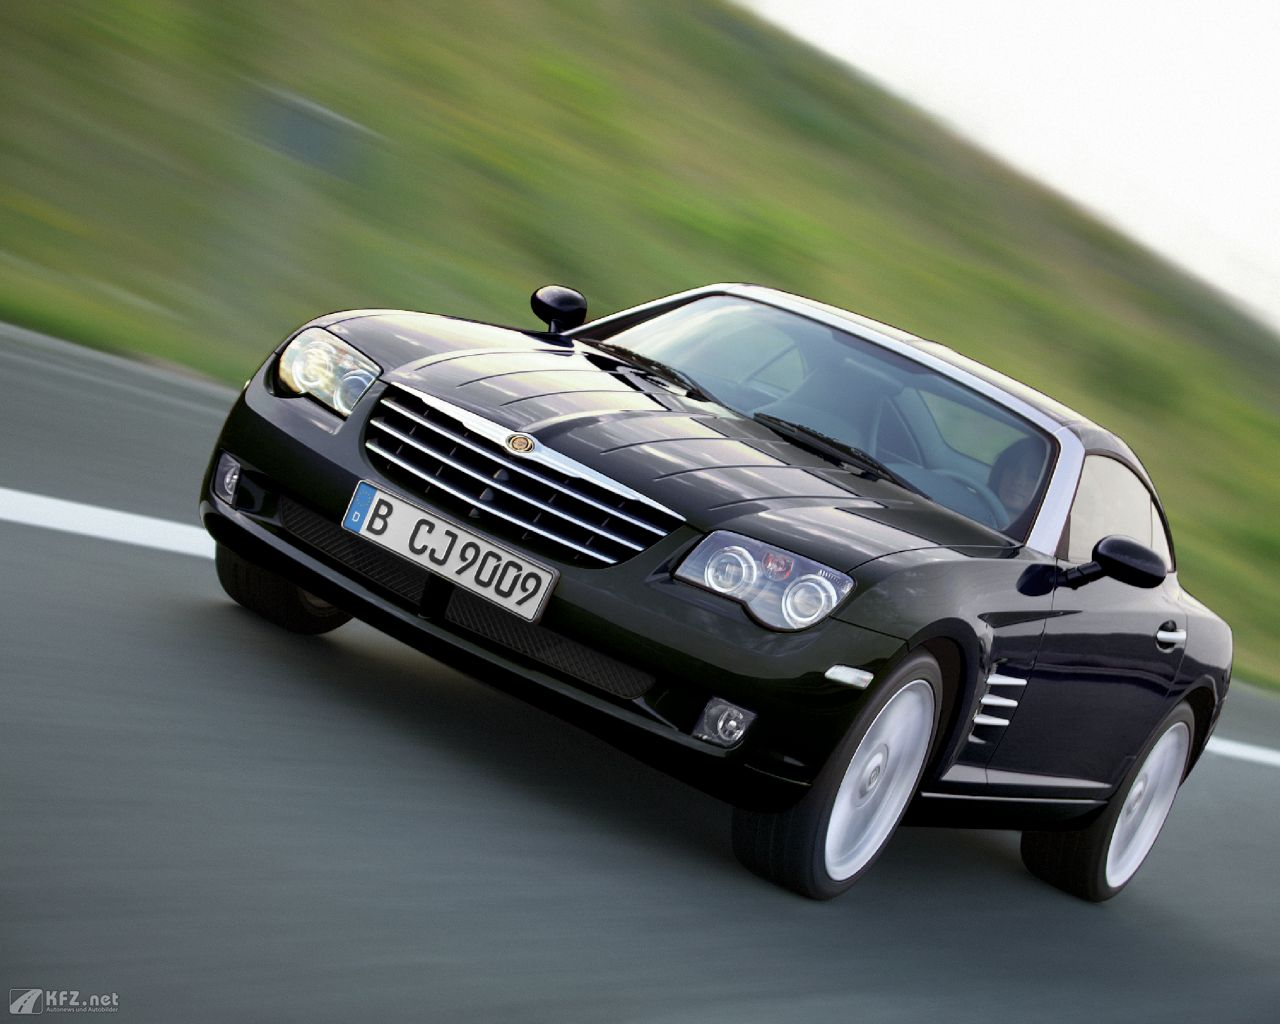 chrysler-crossfire-1280x1024-1